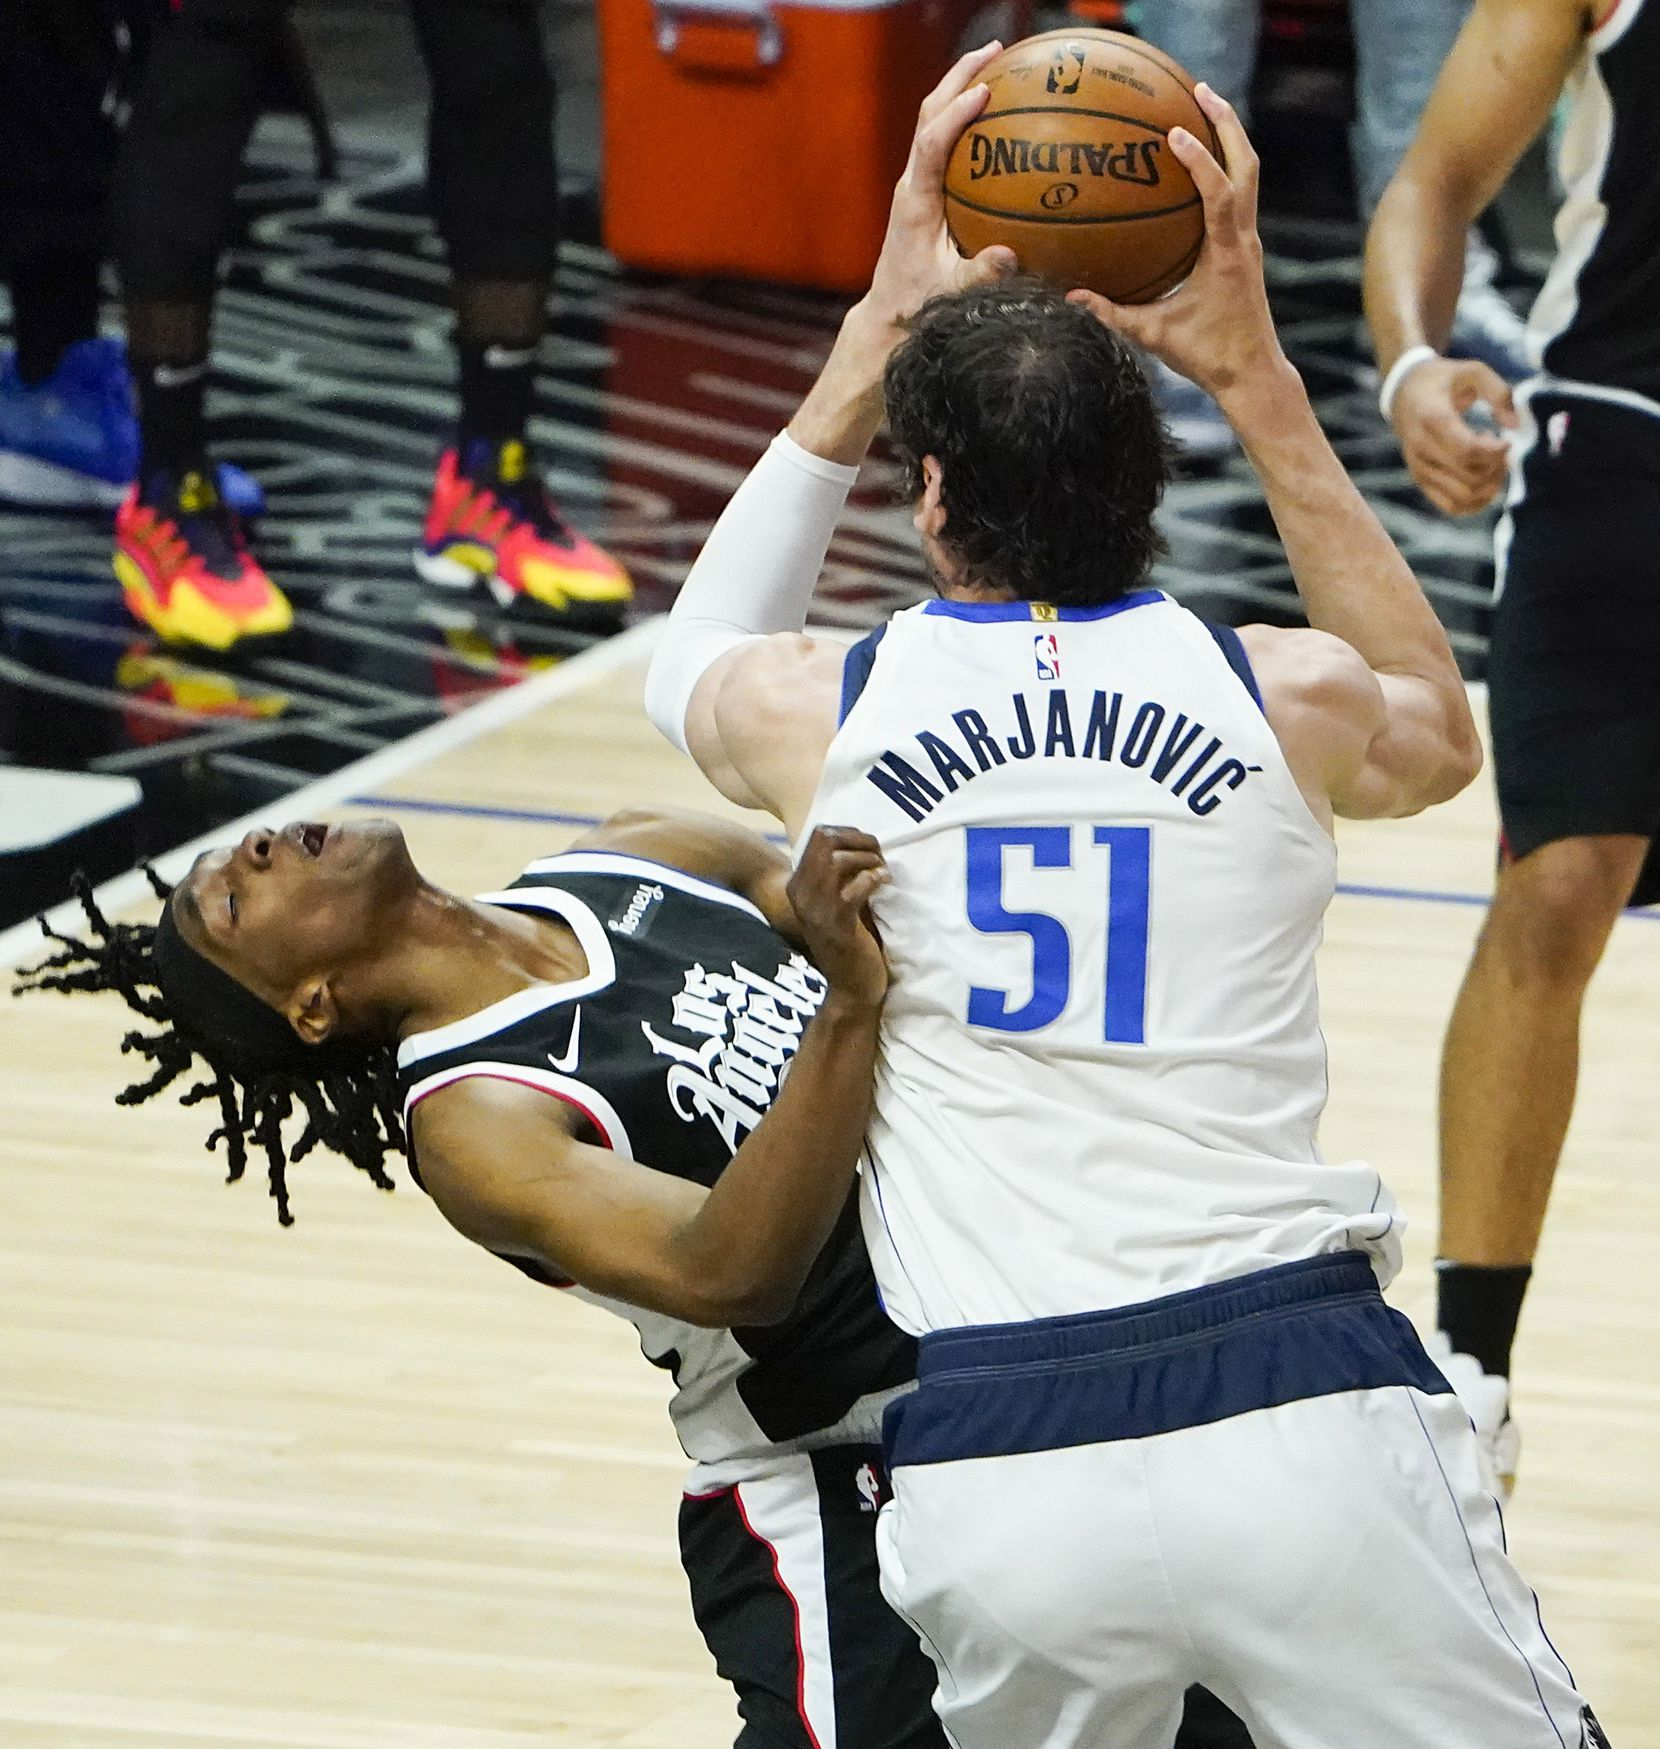 Dallas Mavericks center Boban Marjanovic (51) fouls LA Clippers guard Terance Mann (14) as he goes to the basket during the fourth quarter of an NBA playoff basketball game at the Staples Center on Wednesday, June 2, 2021, in Los Angeles. The Mavericks won the game 105-100. (Smiley N. Pool/The Dallas Morning News)